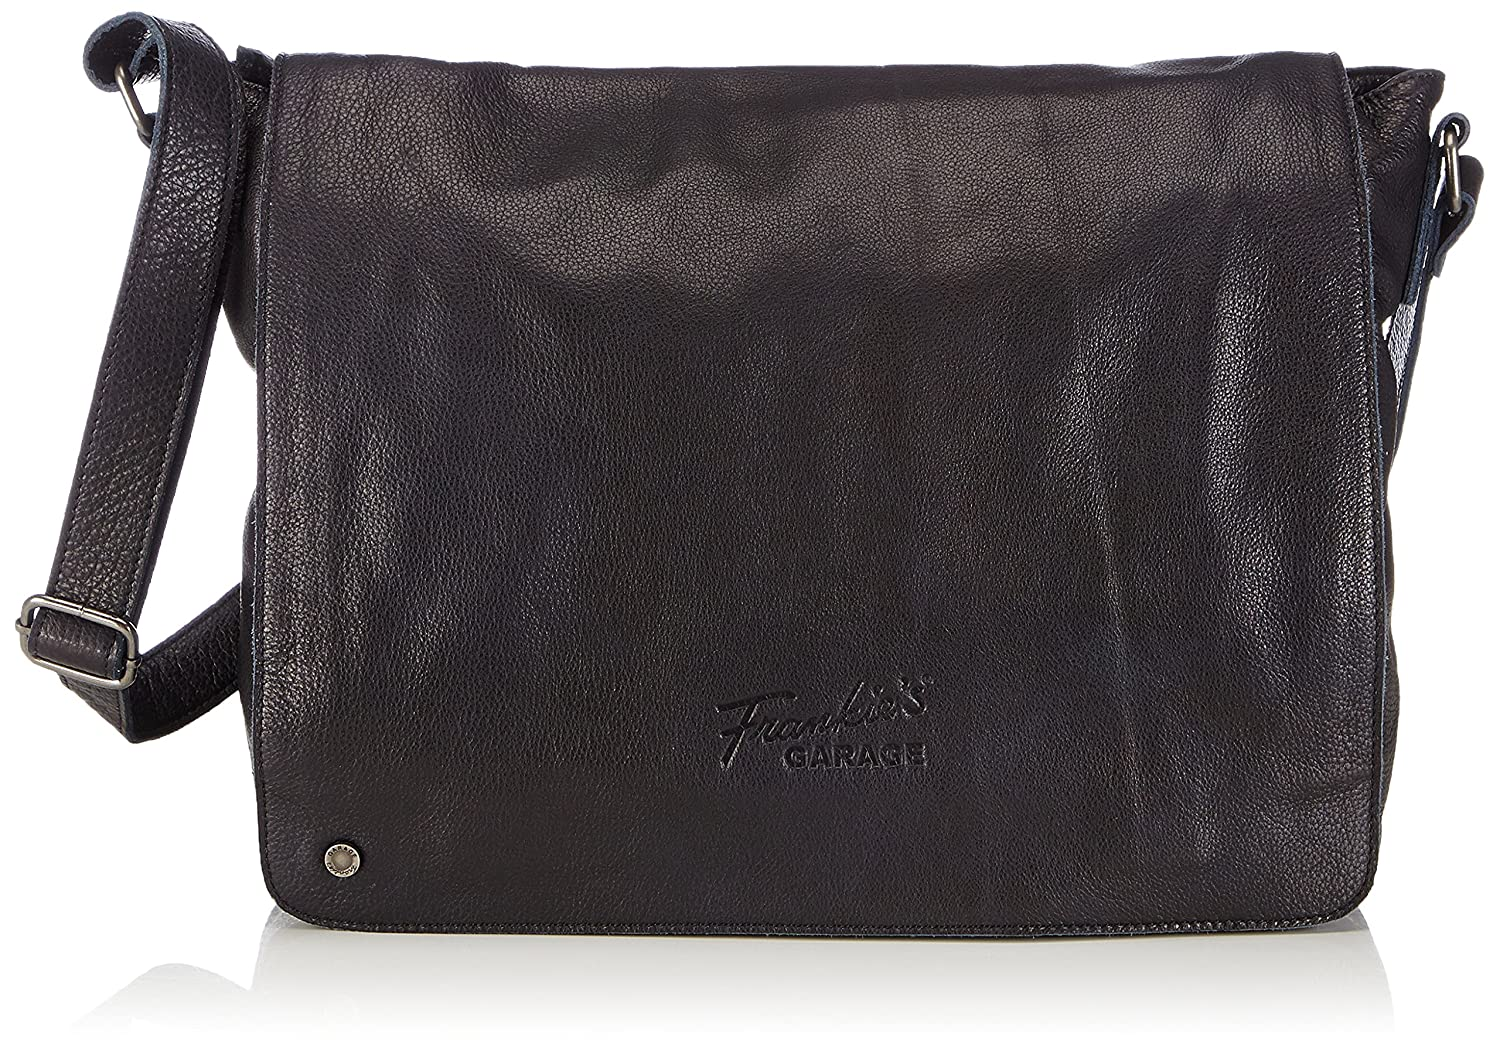 Frankie's Garage Jake, Men's Cross-body Bag